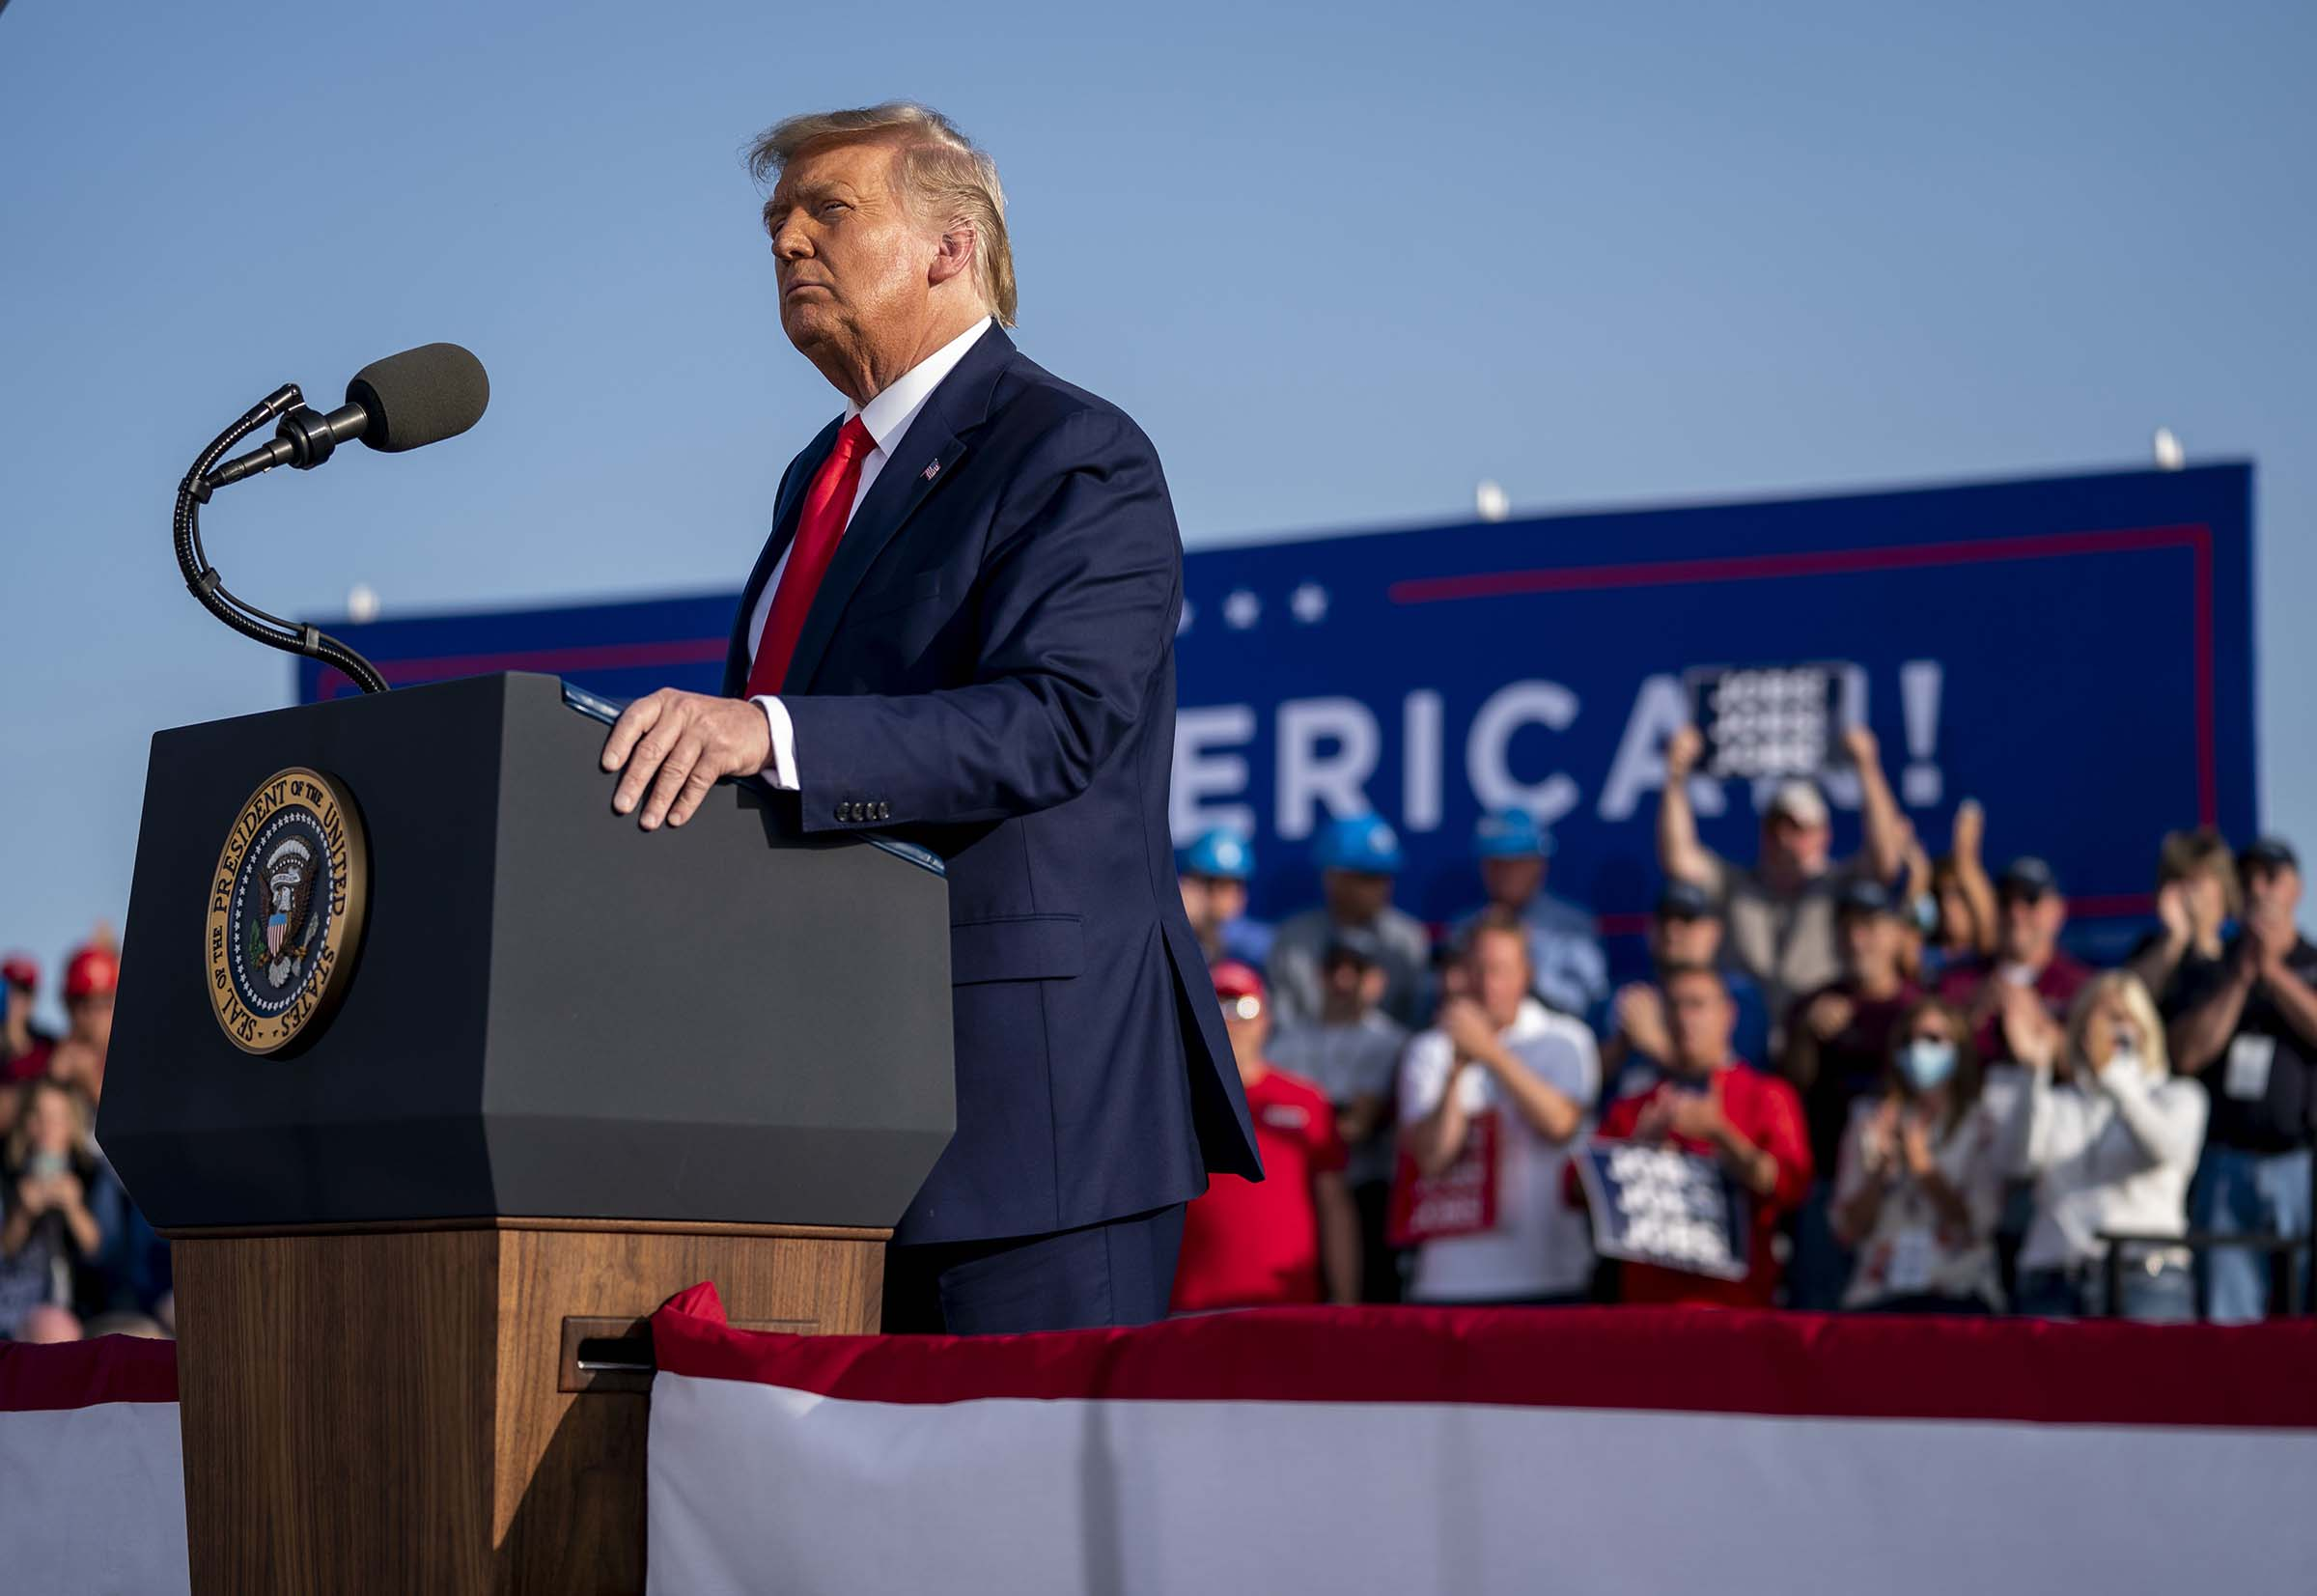 President Donald Trump speaks during a campaign rally at the Dayton International Airport in Ohio, on Sept. 21, 2020.